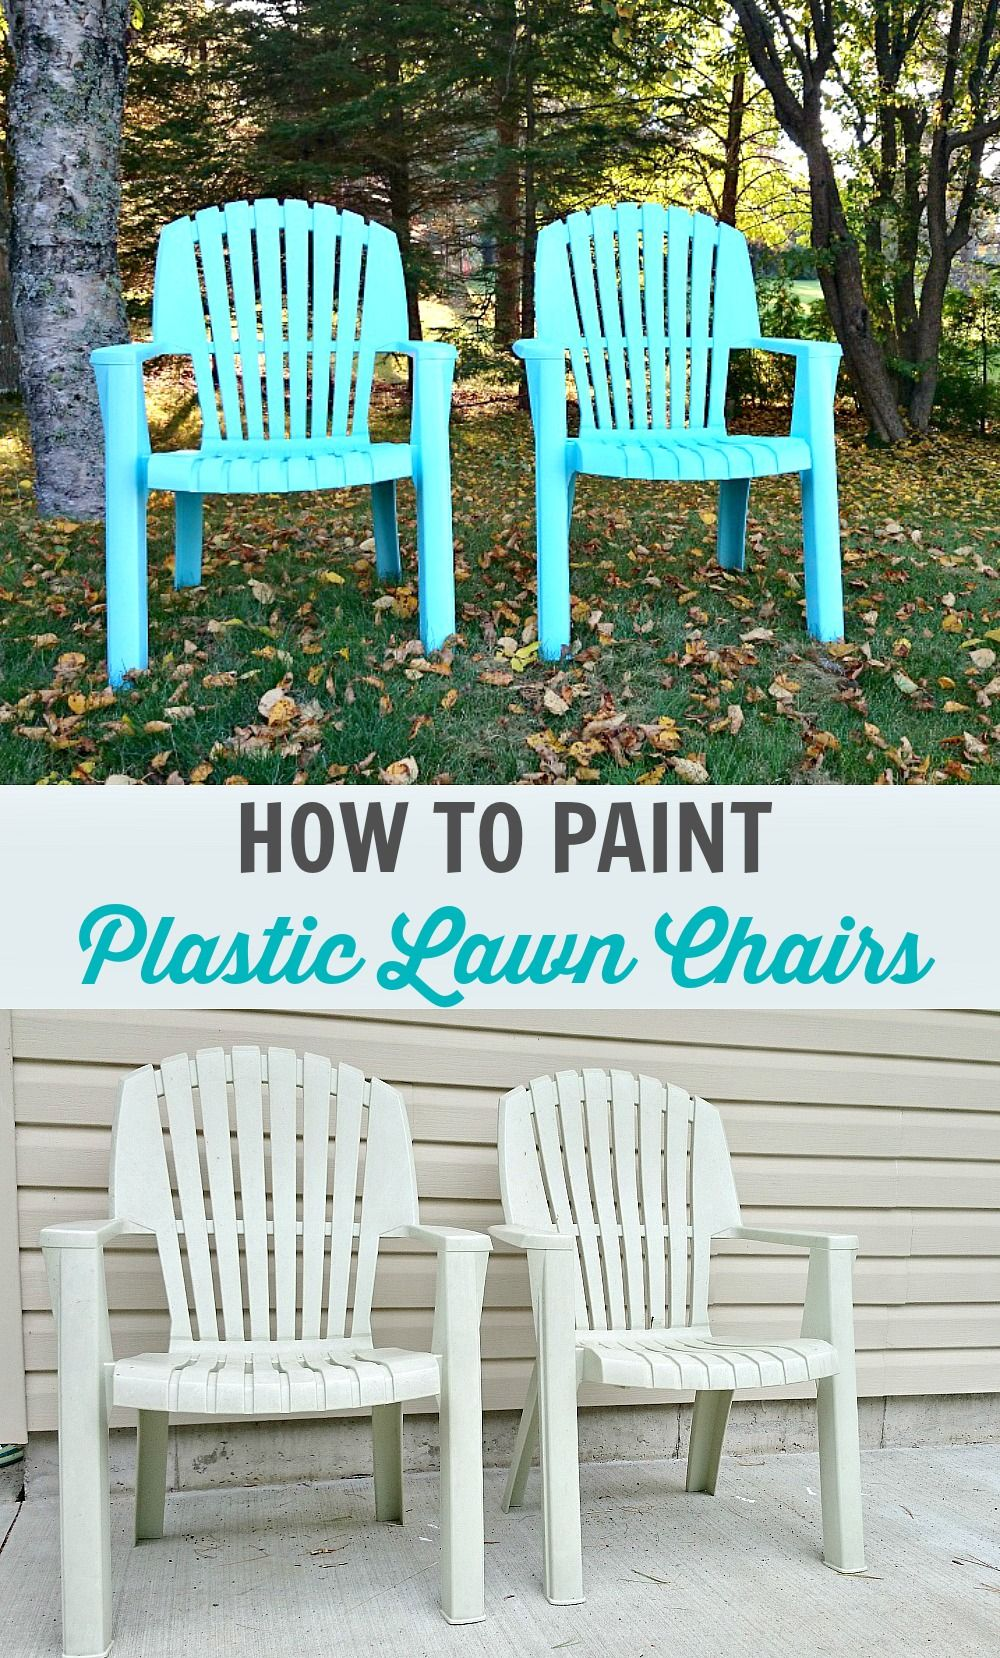 How to Spray Paint Plastic Lawn Chairs Painting plastic